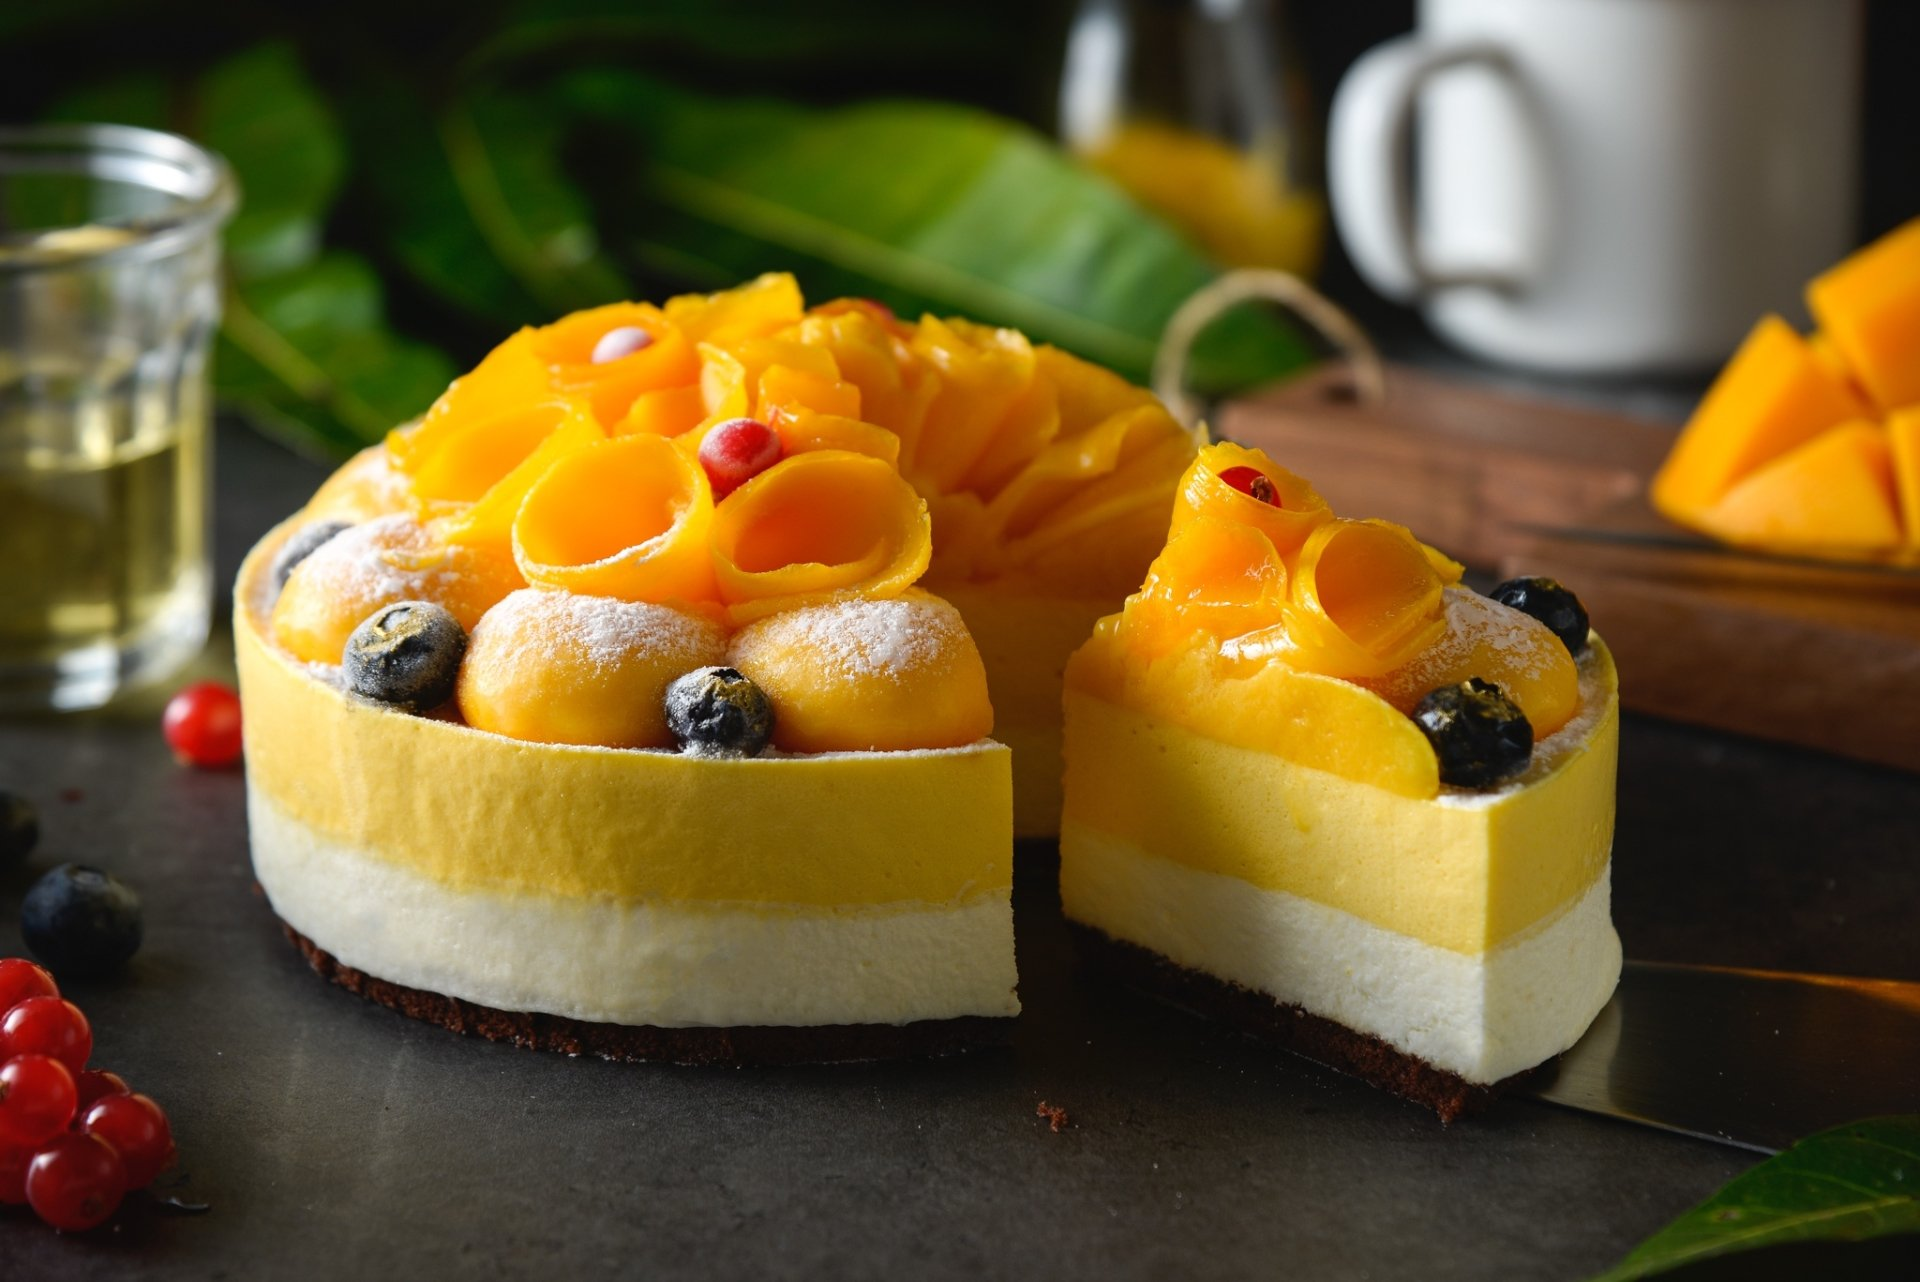 Food - Cake  Pastry Dessert Still Life Fruit Wallpaper